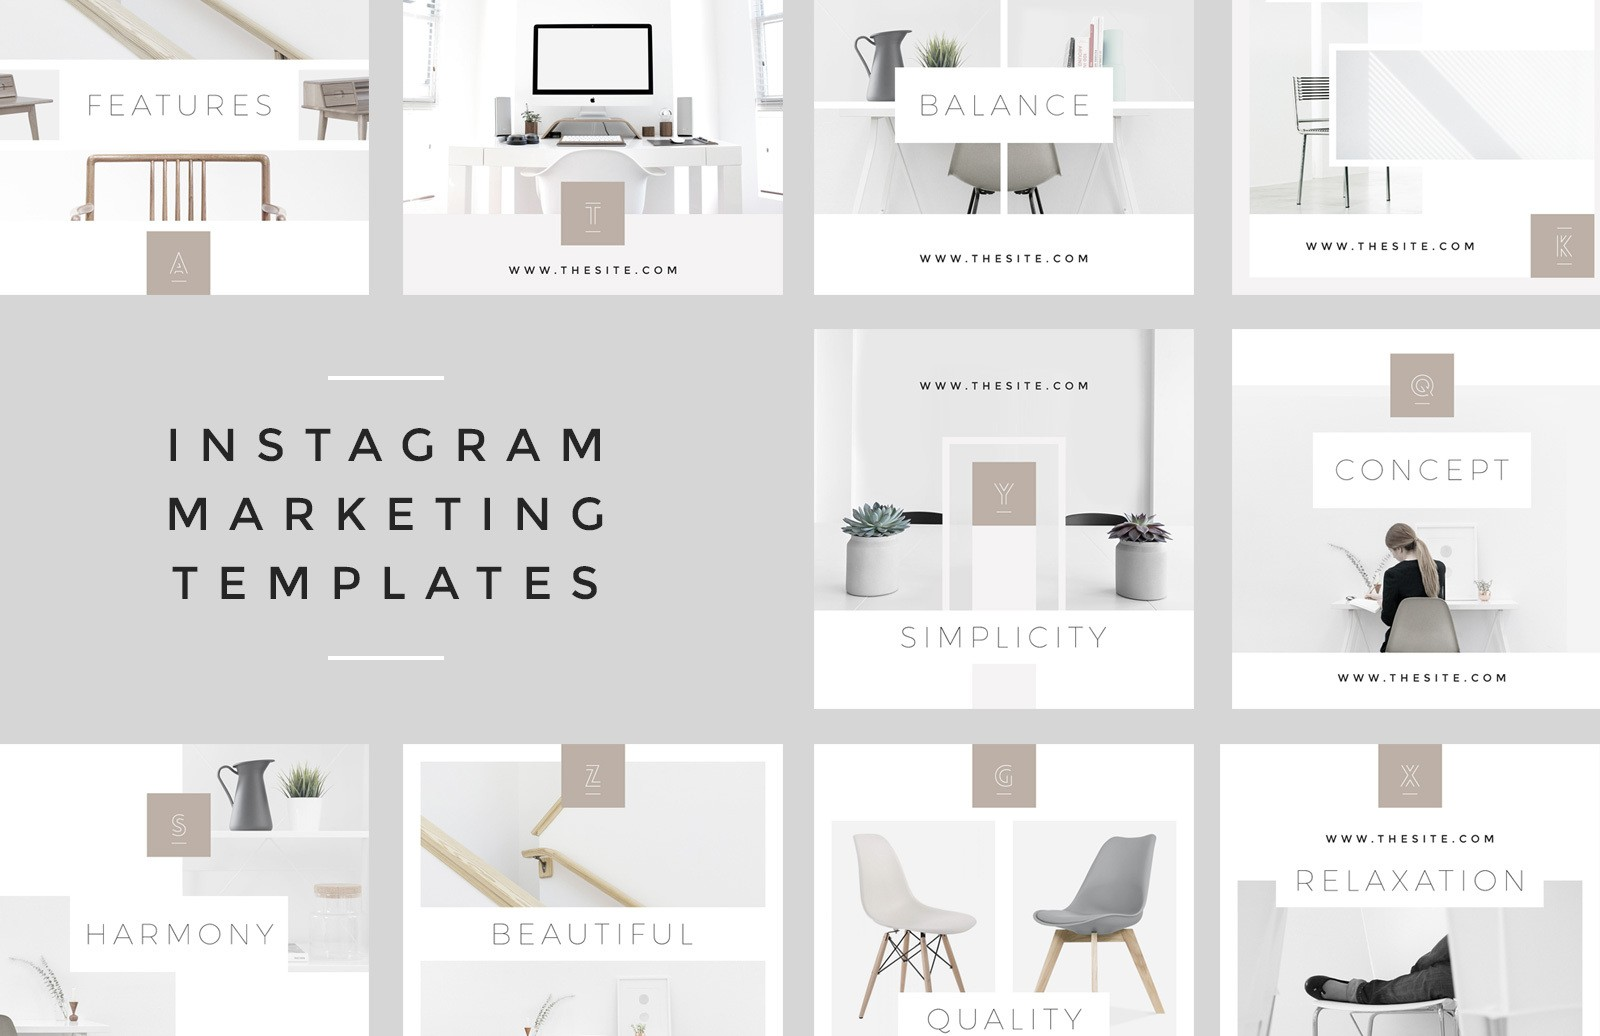 Instagram Marketing Templates